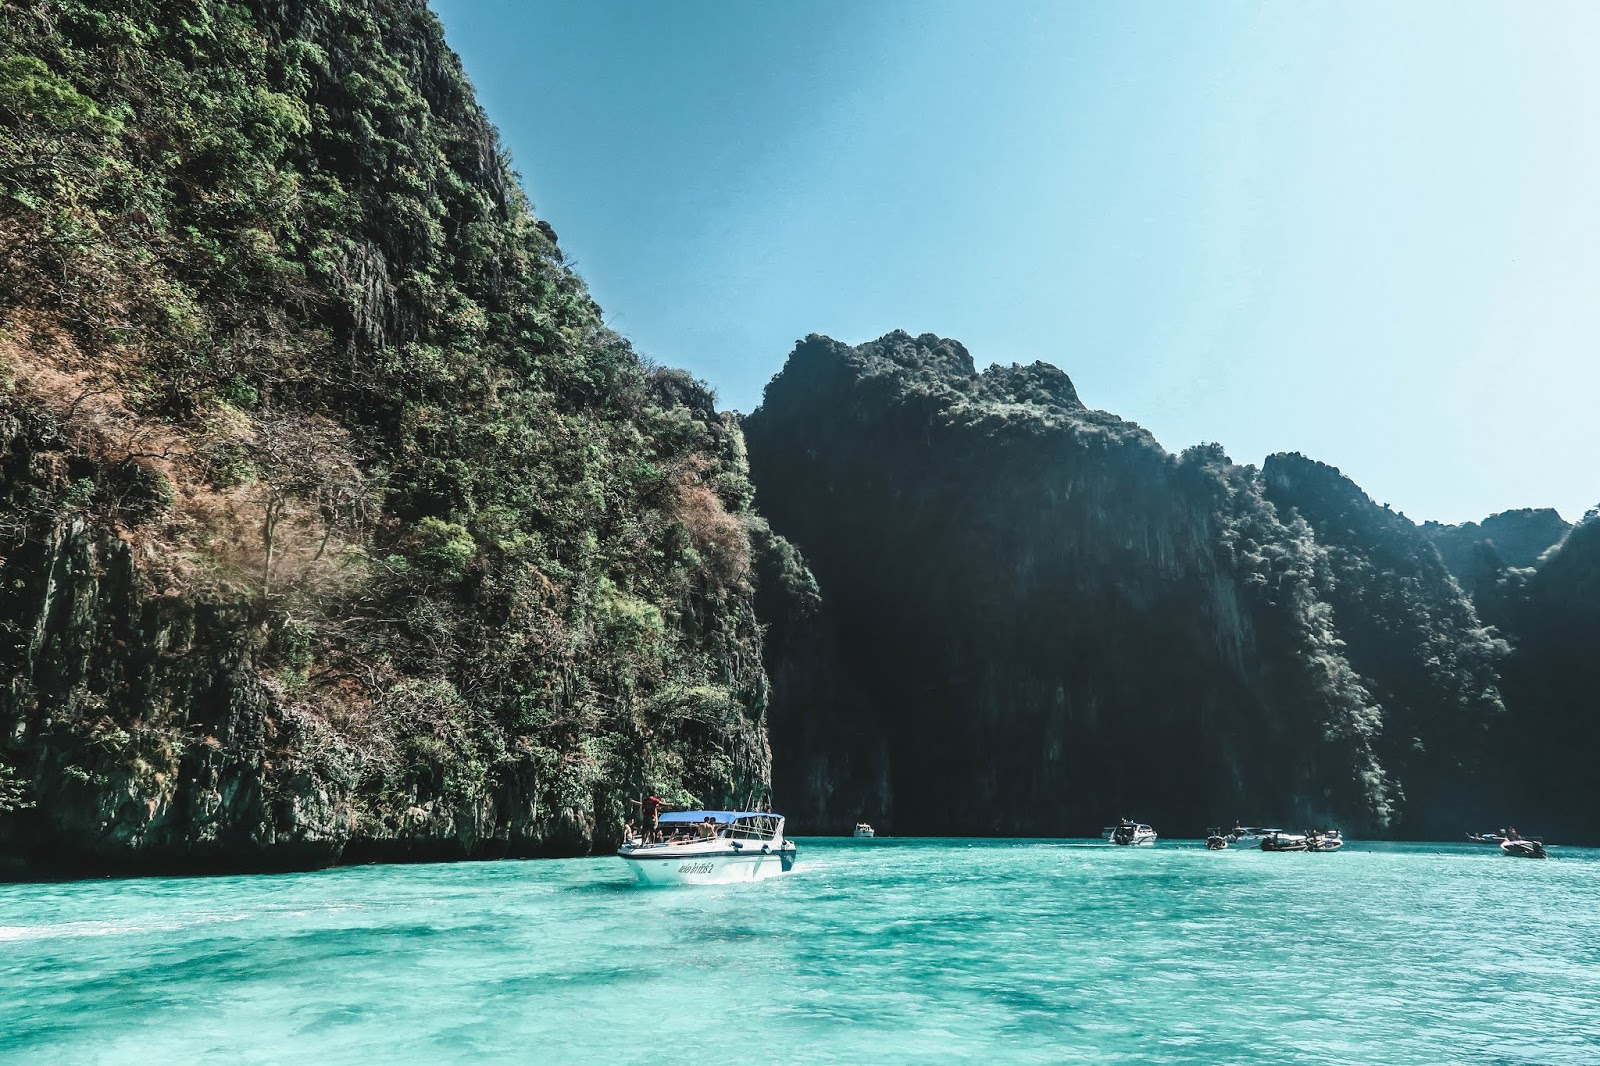 Boat Tours in Koh Phi Phi Thailand